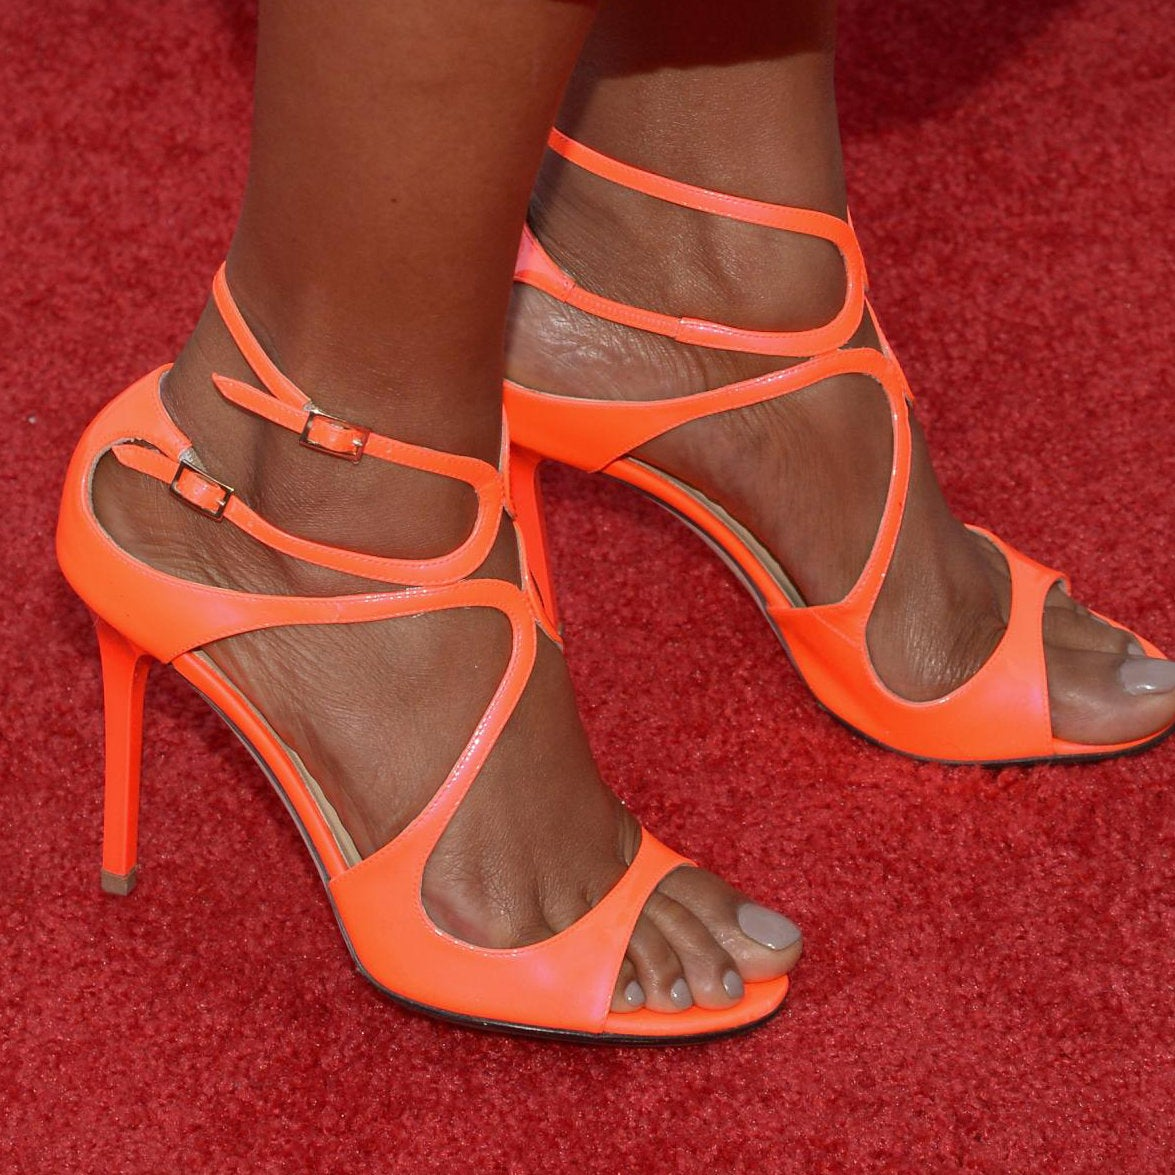 Hollywood Heels: Starlets On The Scene Strutting Their Stuff